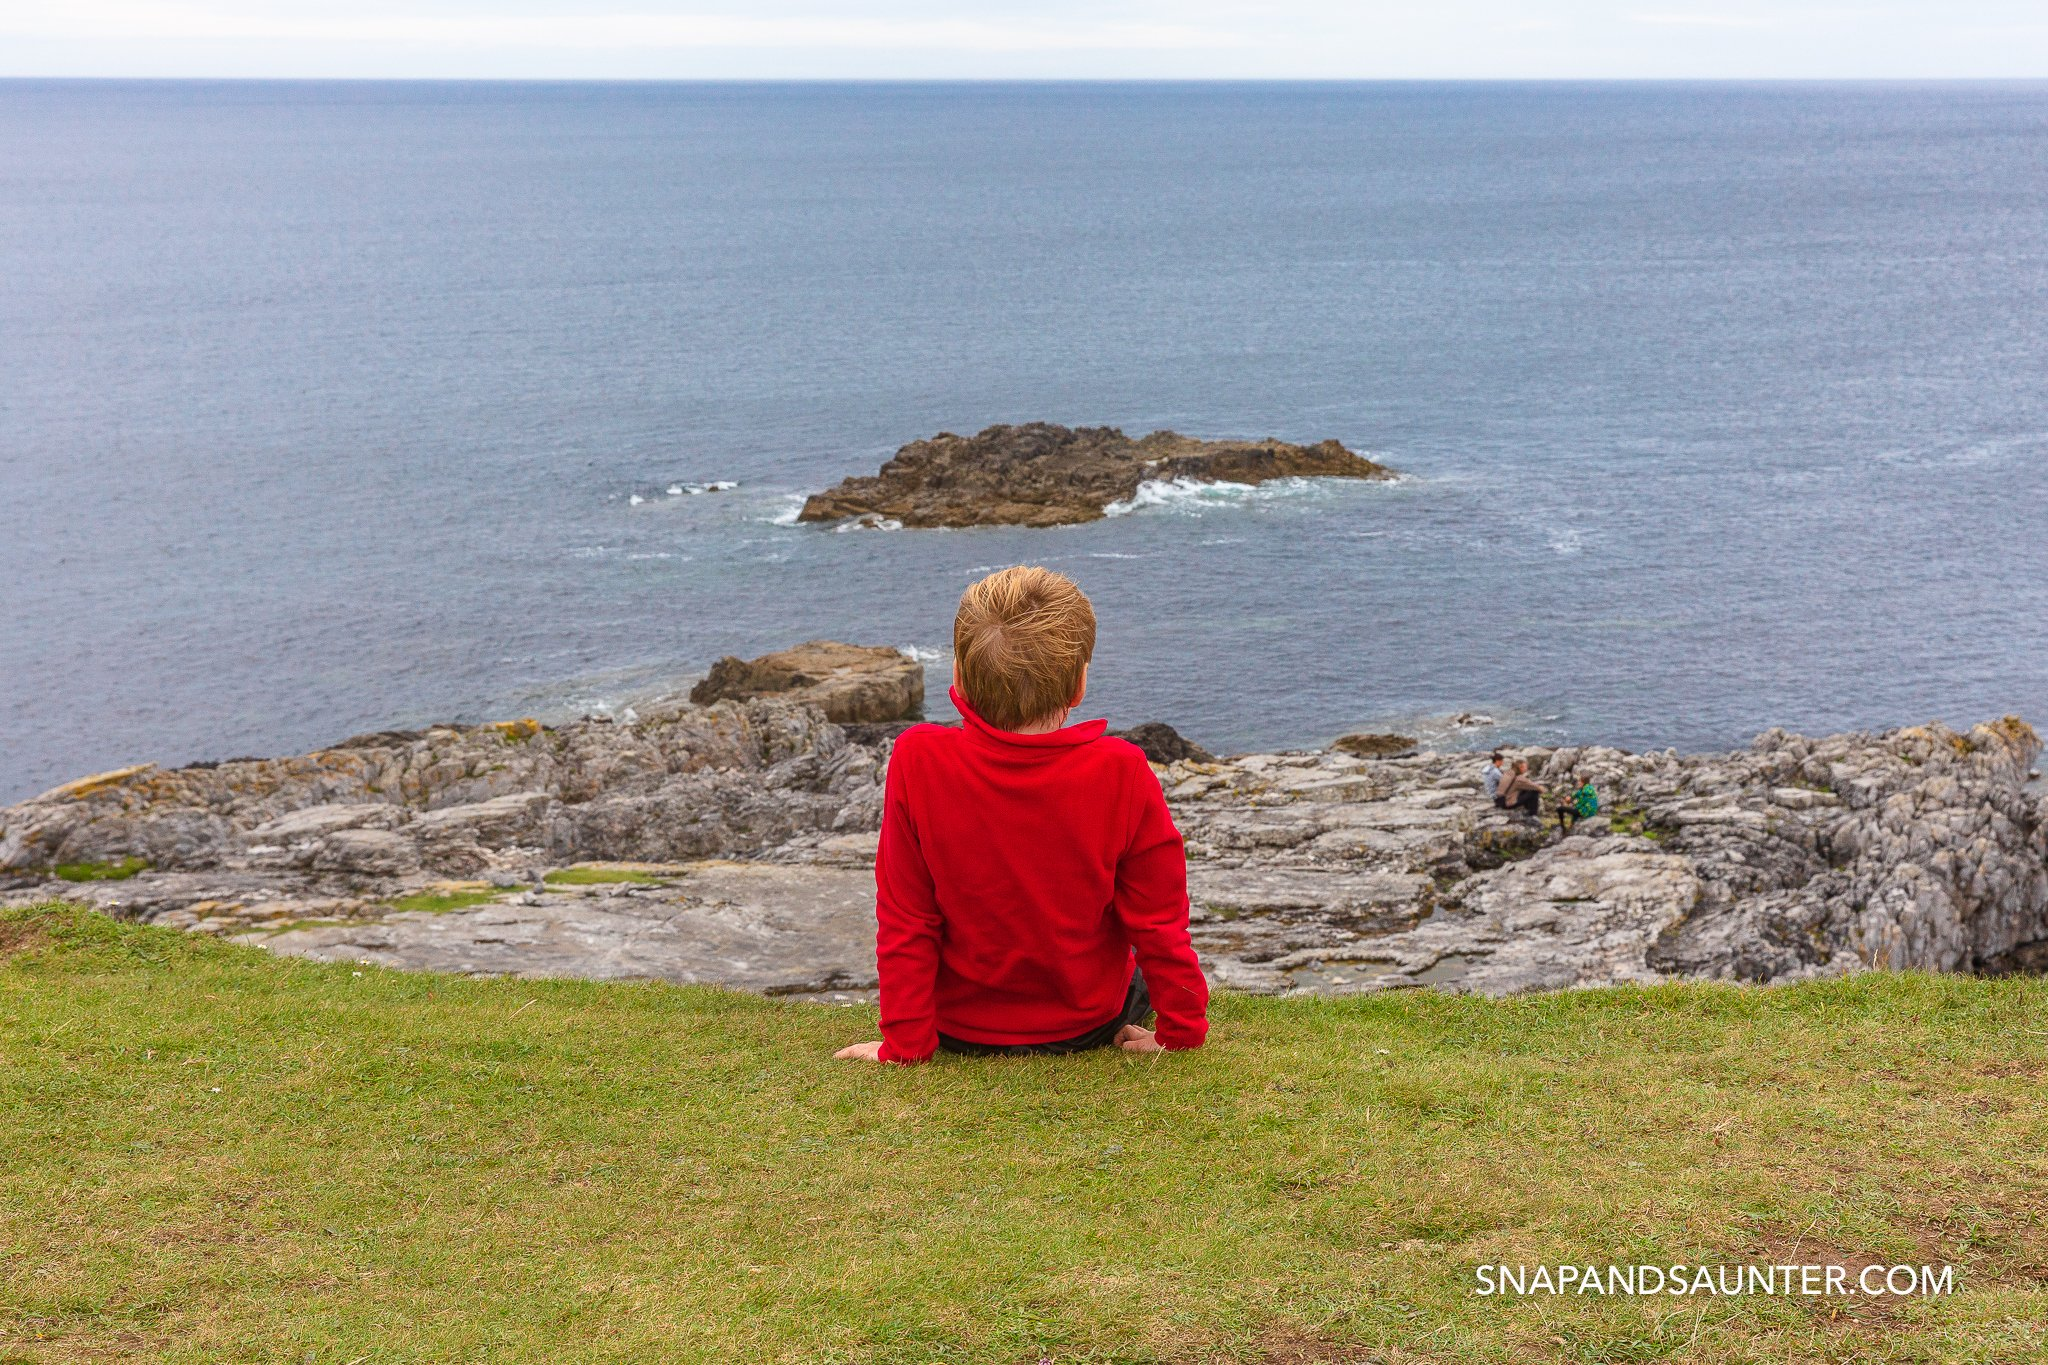 A boy sitting on grass watching the sea